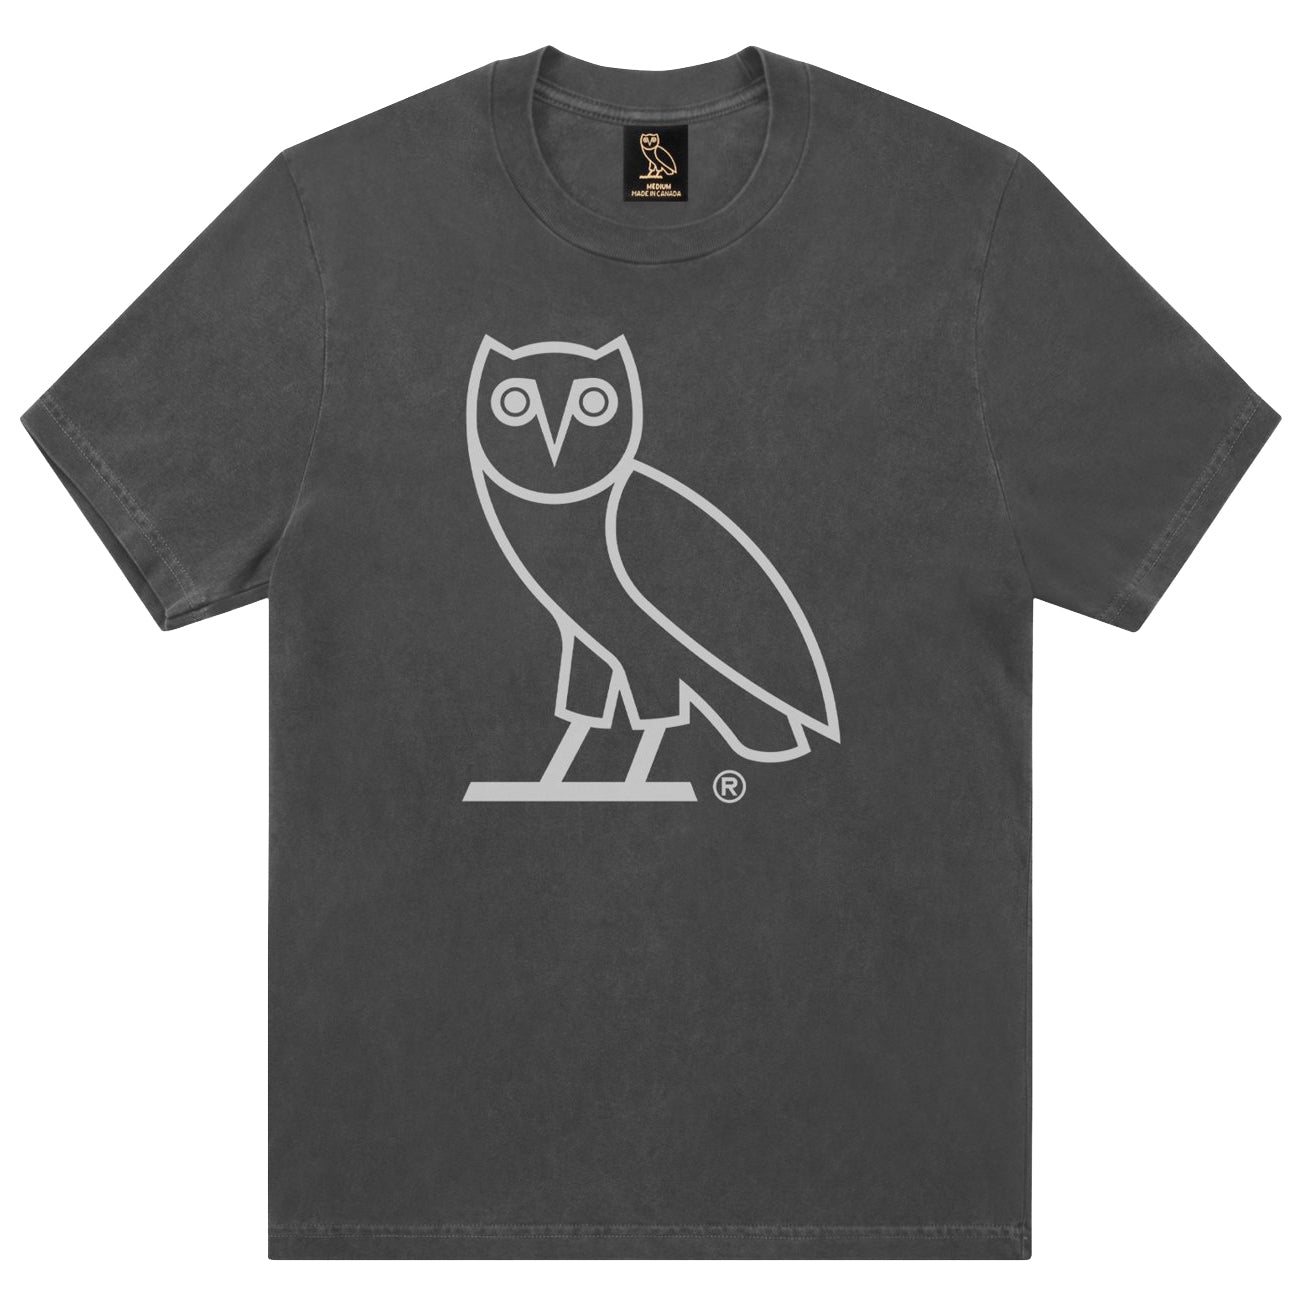 f1dea0556f31 Drake s October s Very Own OVO Owl Pigment Dye HoT-Shirt Size Medium - Sold  Out